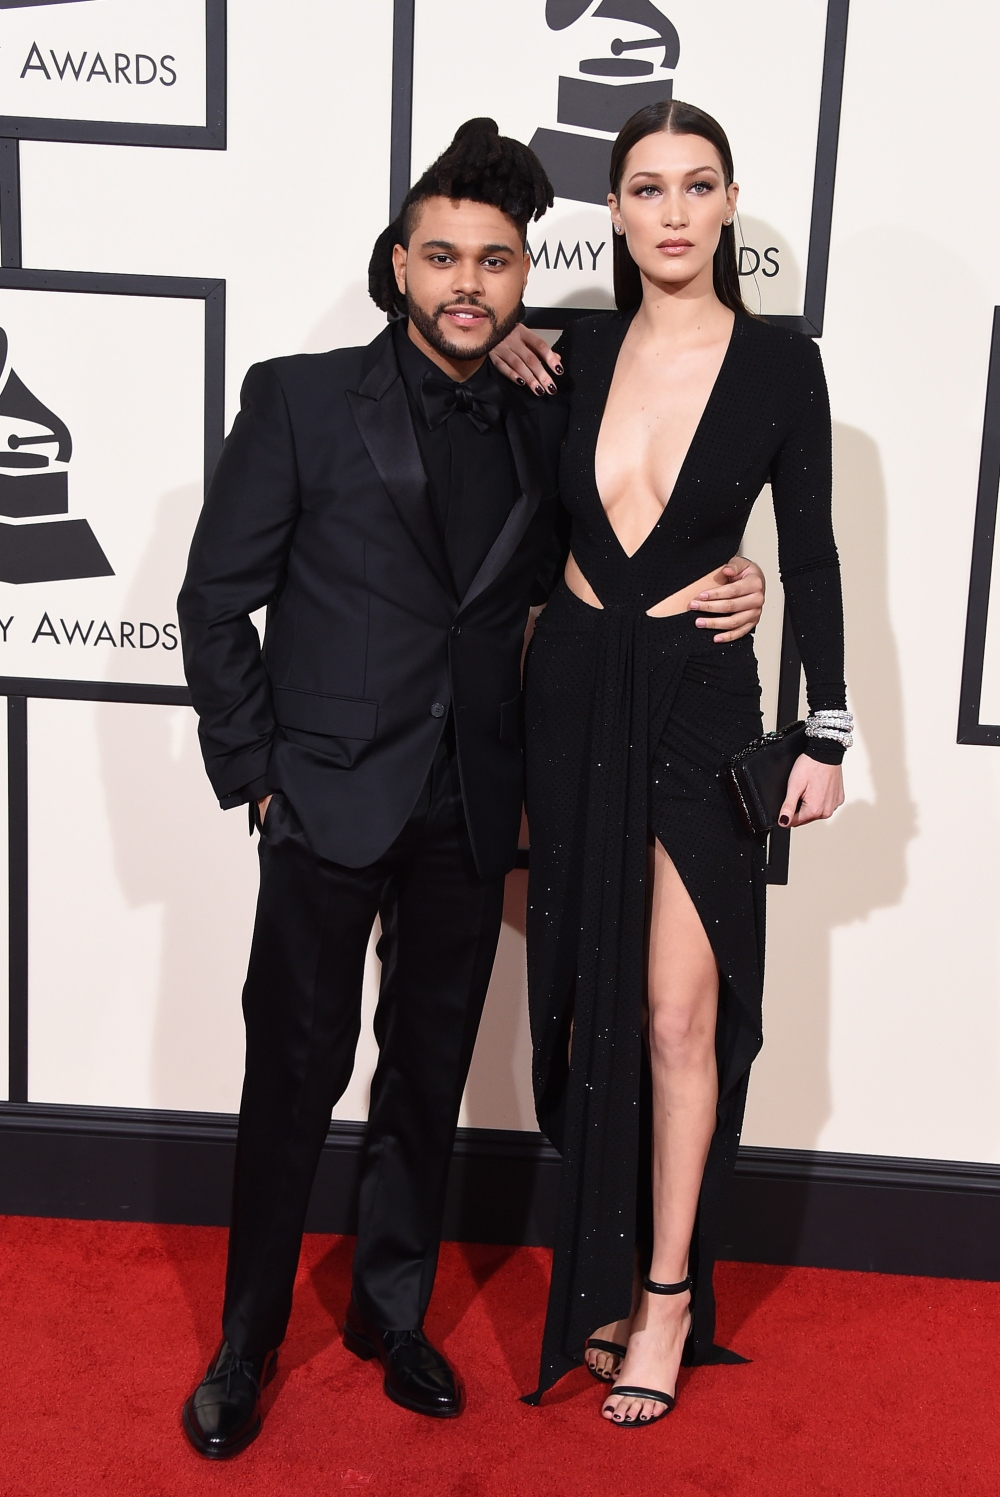 the-weeknd-bella-hadid-grammy-awards-red-carpet-21516-2.jpg